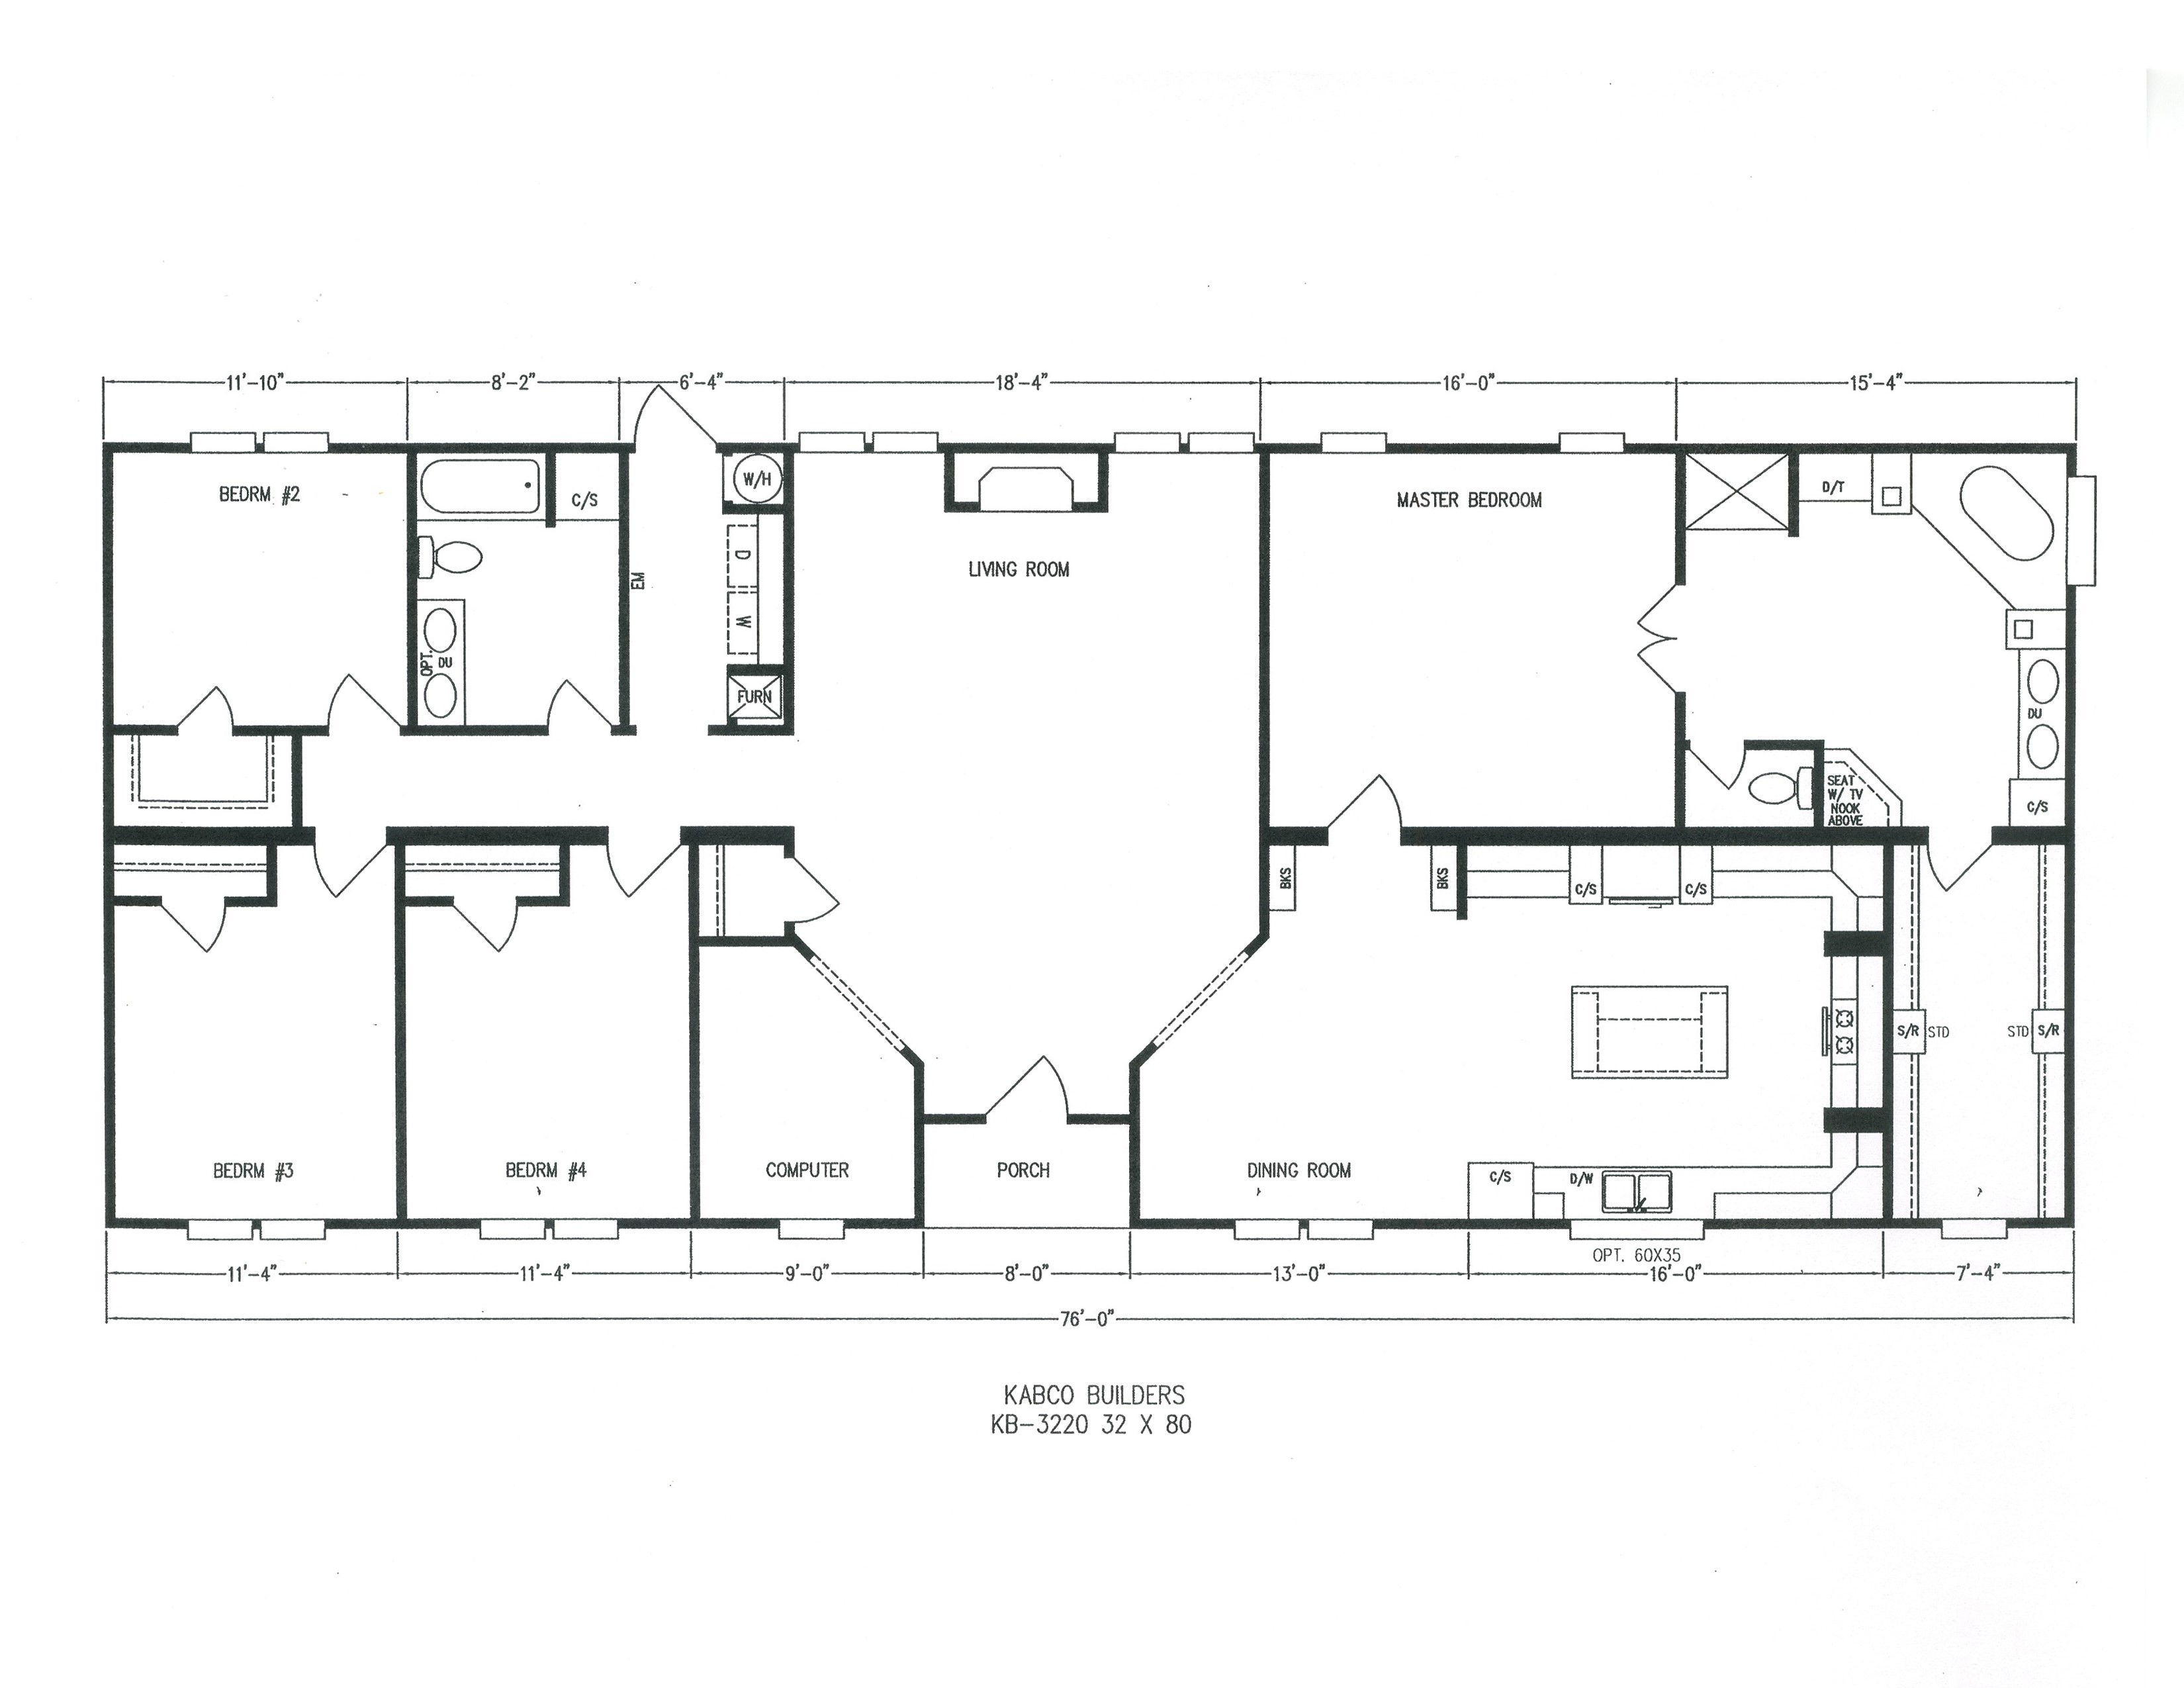 Kb 3220 kabco builders for Builders home plans